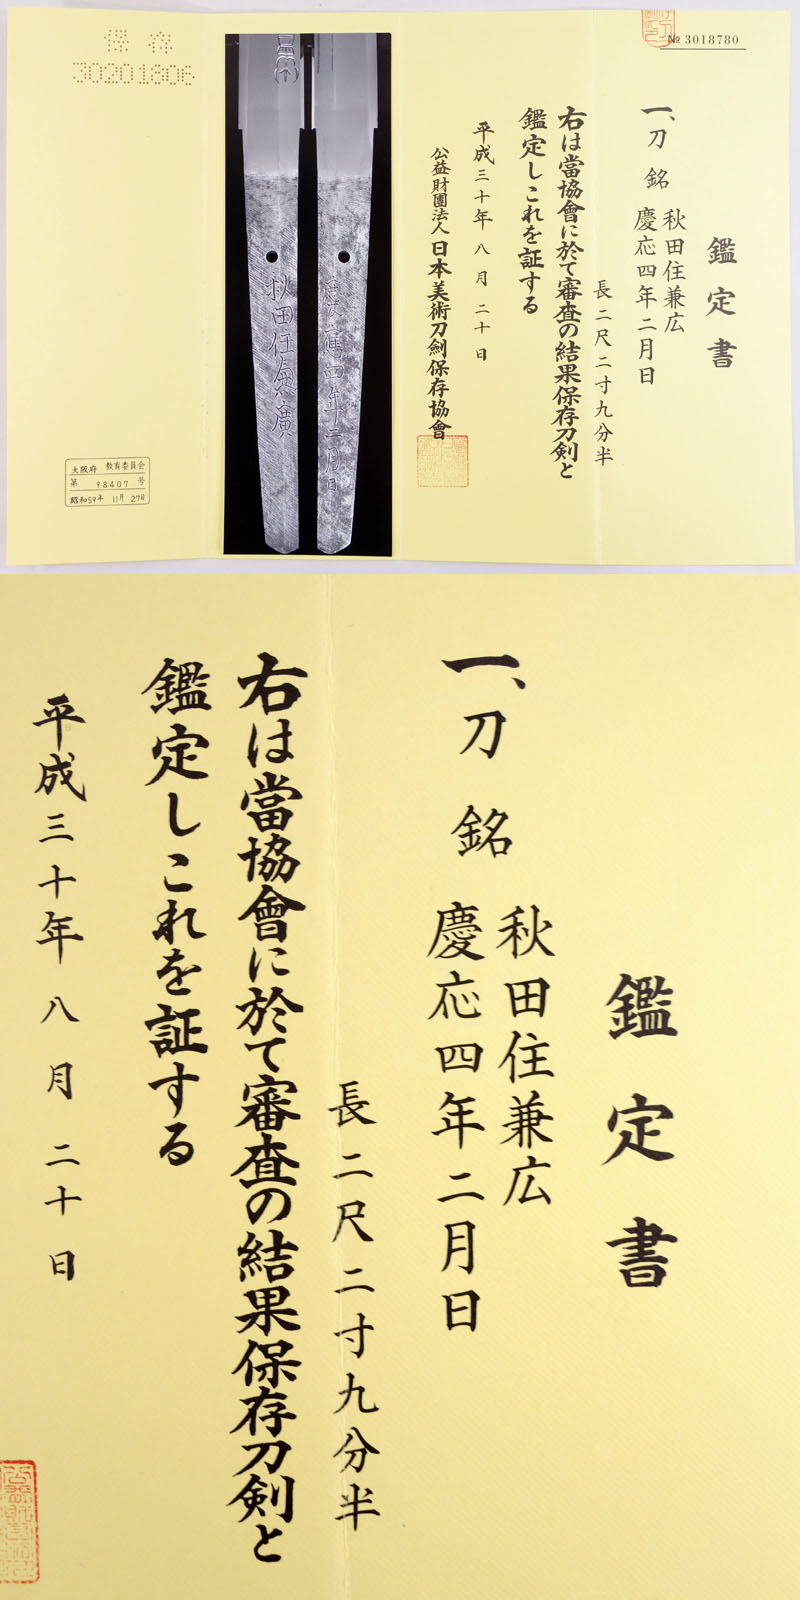 秋田住兼広 Picture of Certificate